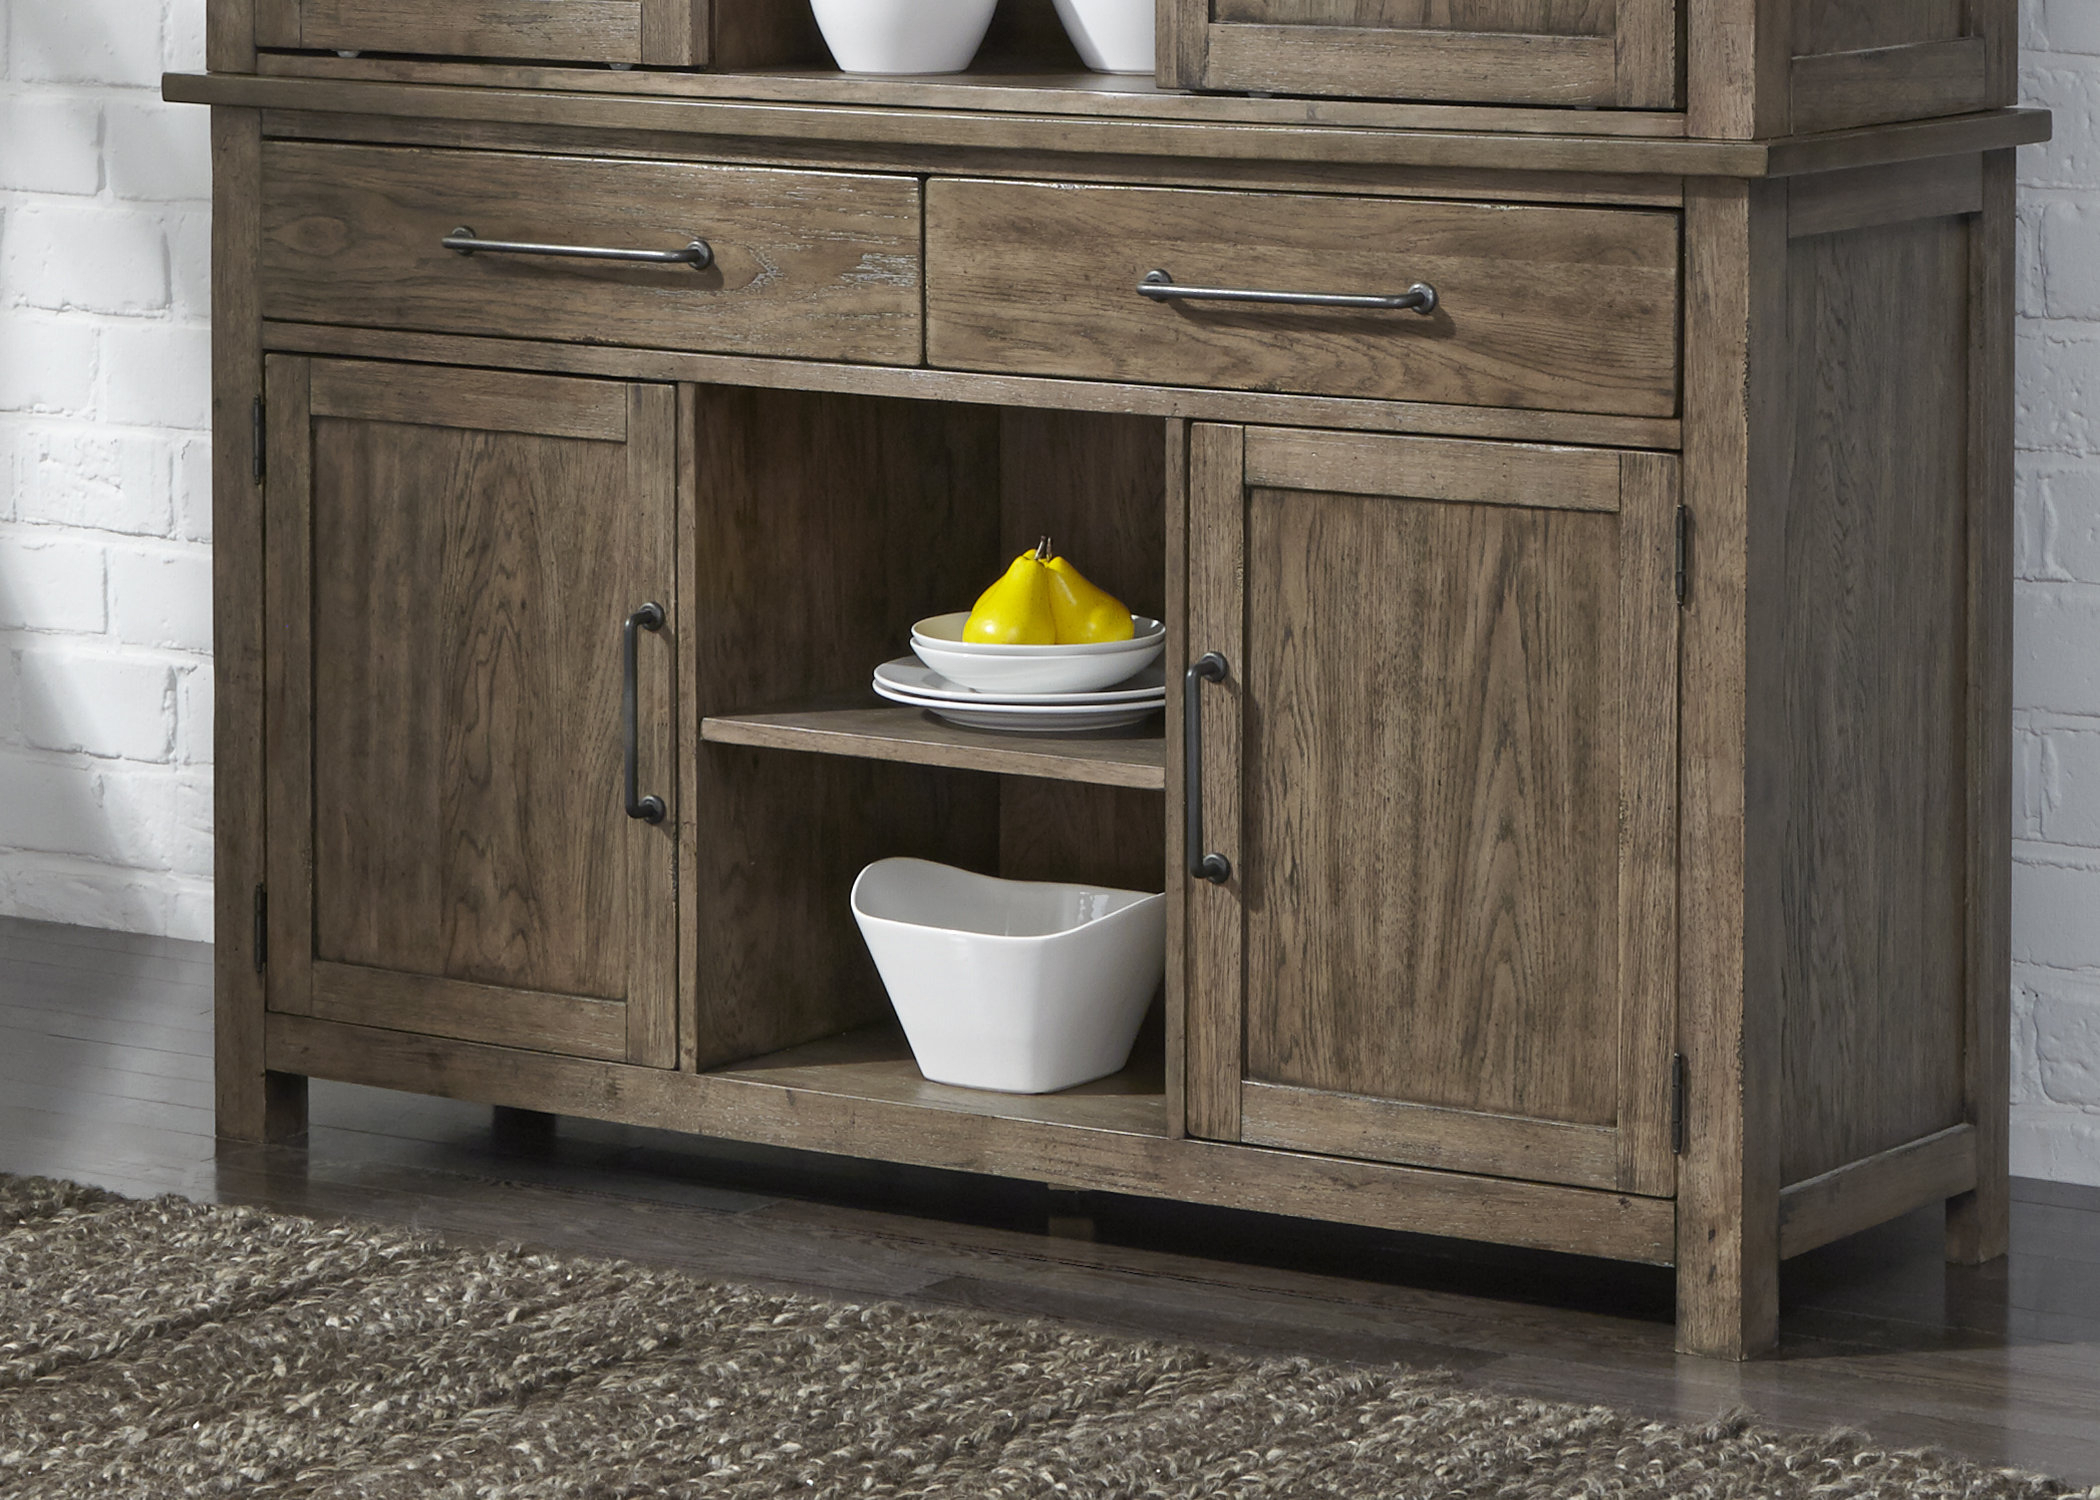 Farmhouse & Rustic Gracie Oaks Sideboards & Buffets | Birch Lane Within Latest Hayter Sideboards (View 18 of 20)